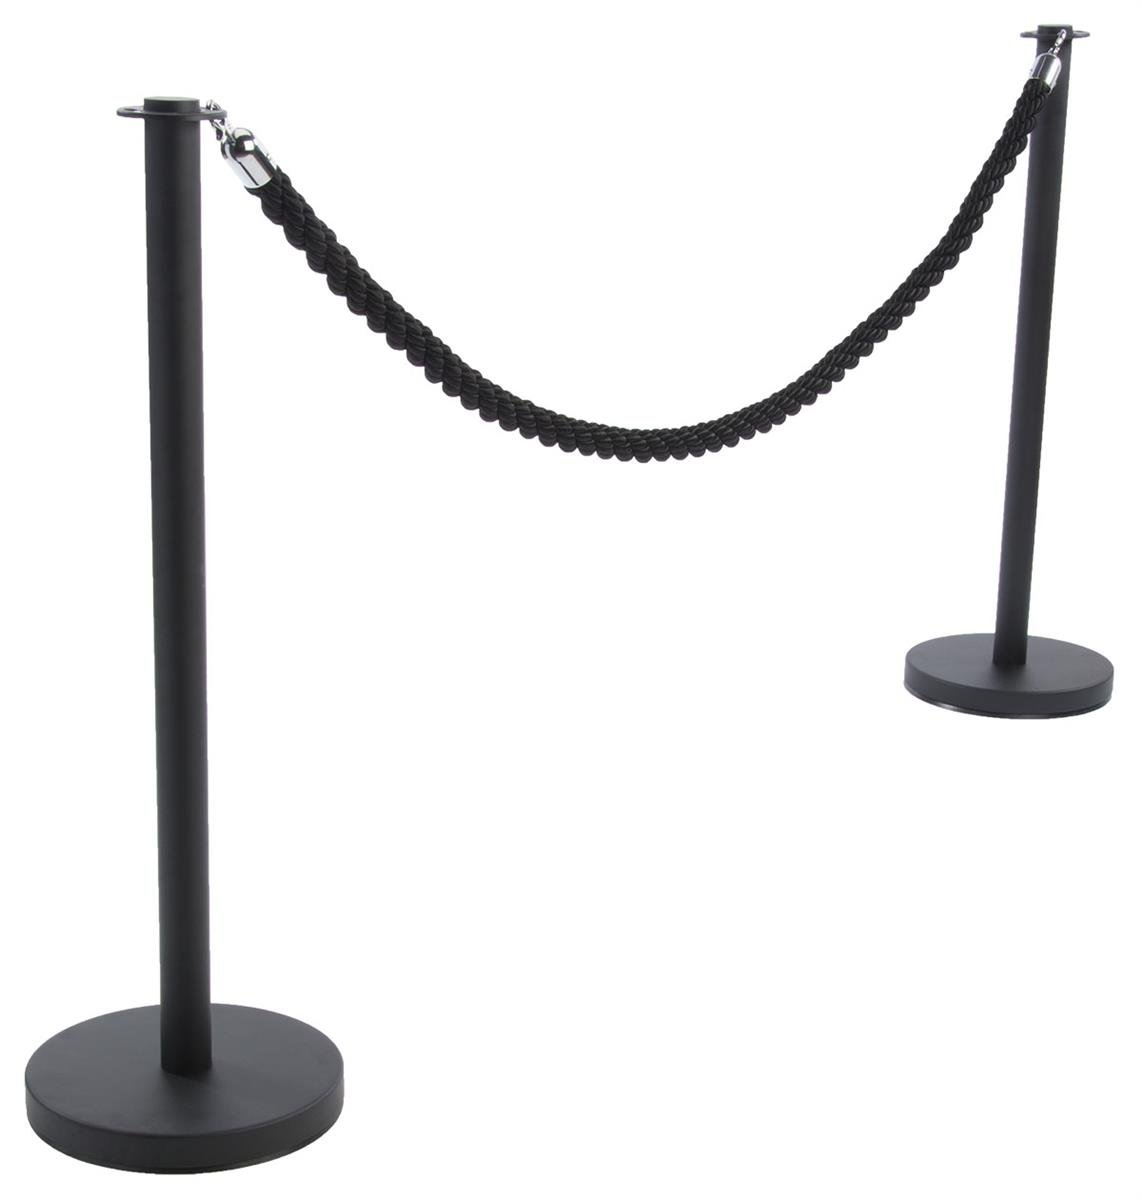 Crowd Control Rope Barrier (Black) - Two 39 Inch Metal Stanchion Posts; 78 Inch Nylon Rope, Chrome Hooks